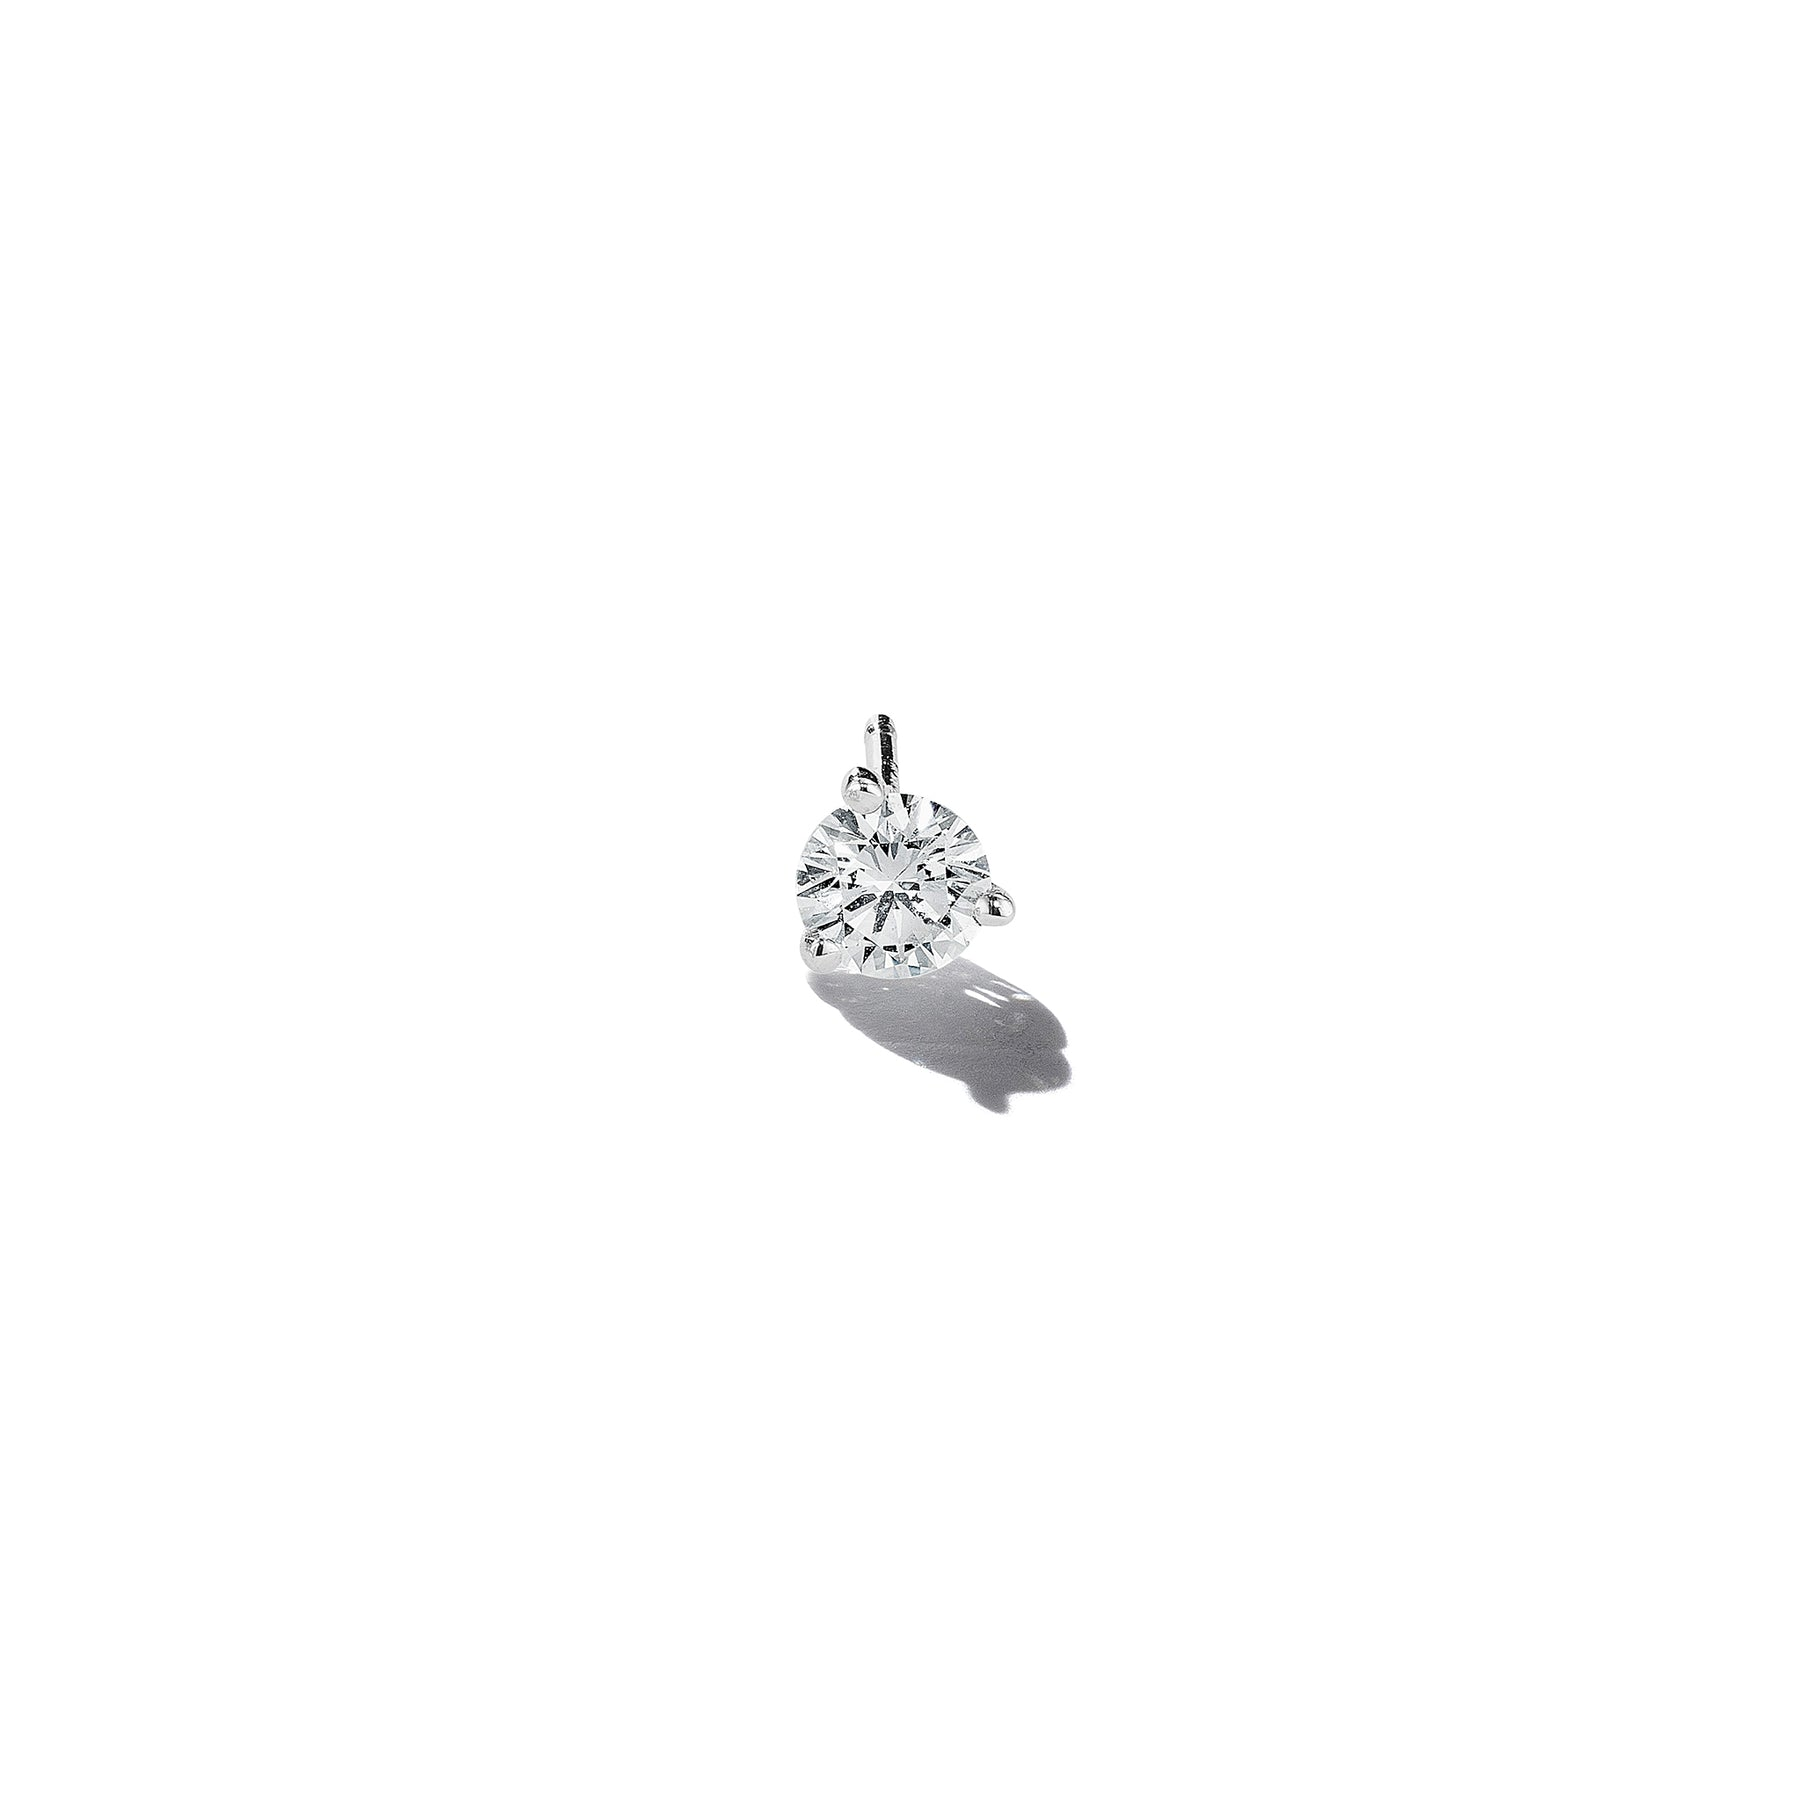 Martini Style Diamond Single Stud – 4mm